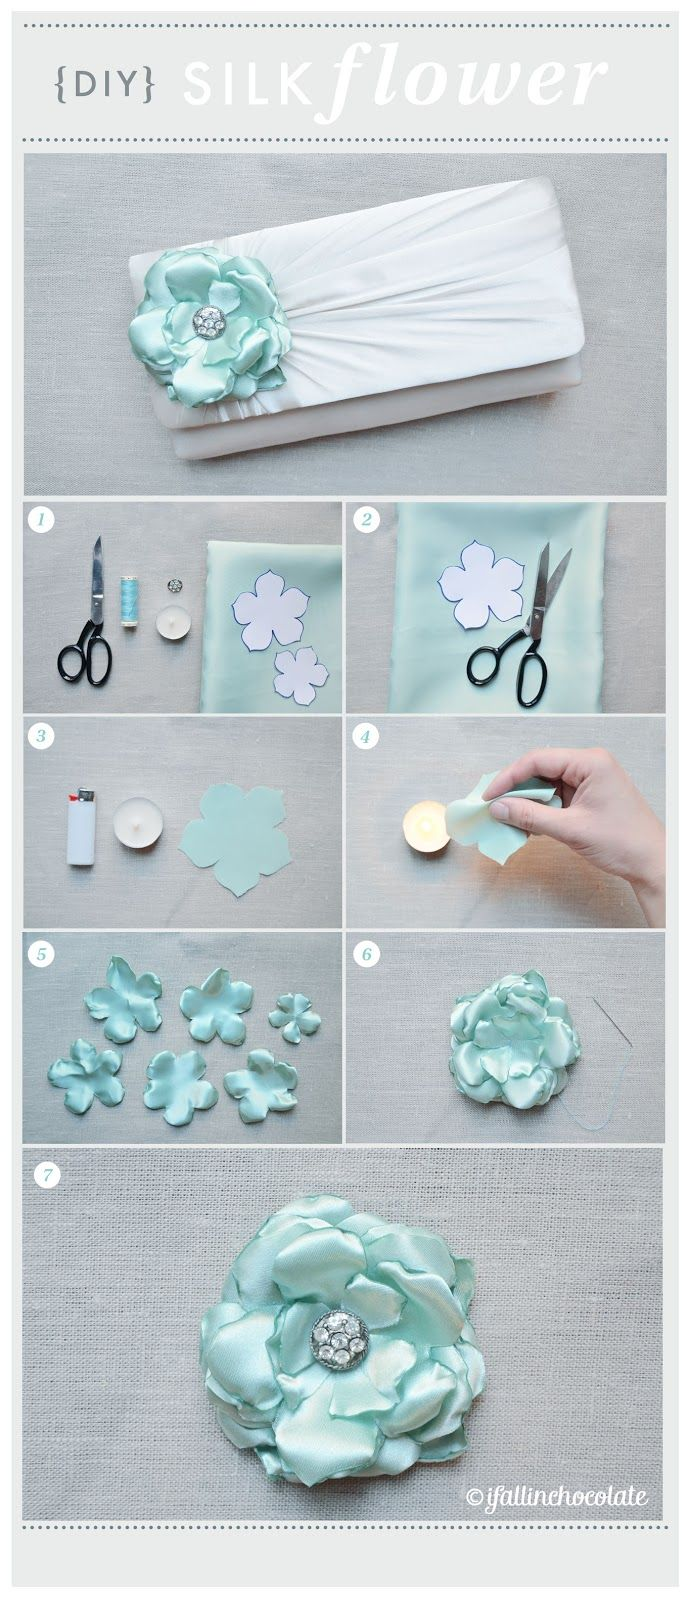 Diy Silk Flower Instructions In Italian But The Photos Are Easy To